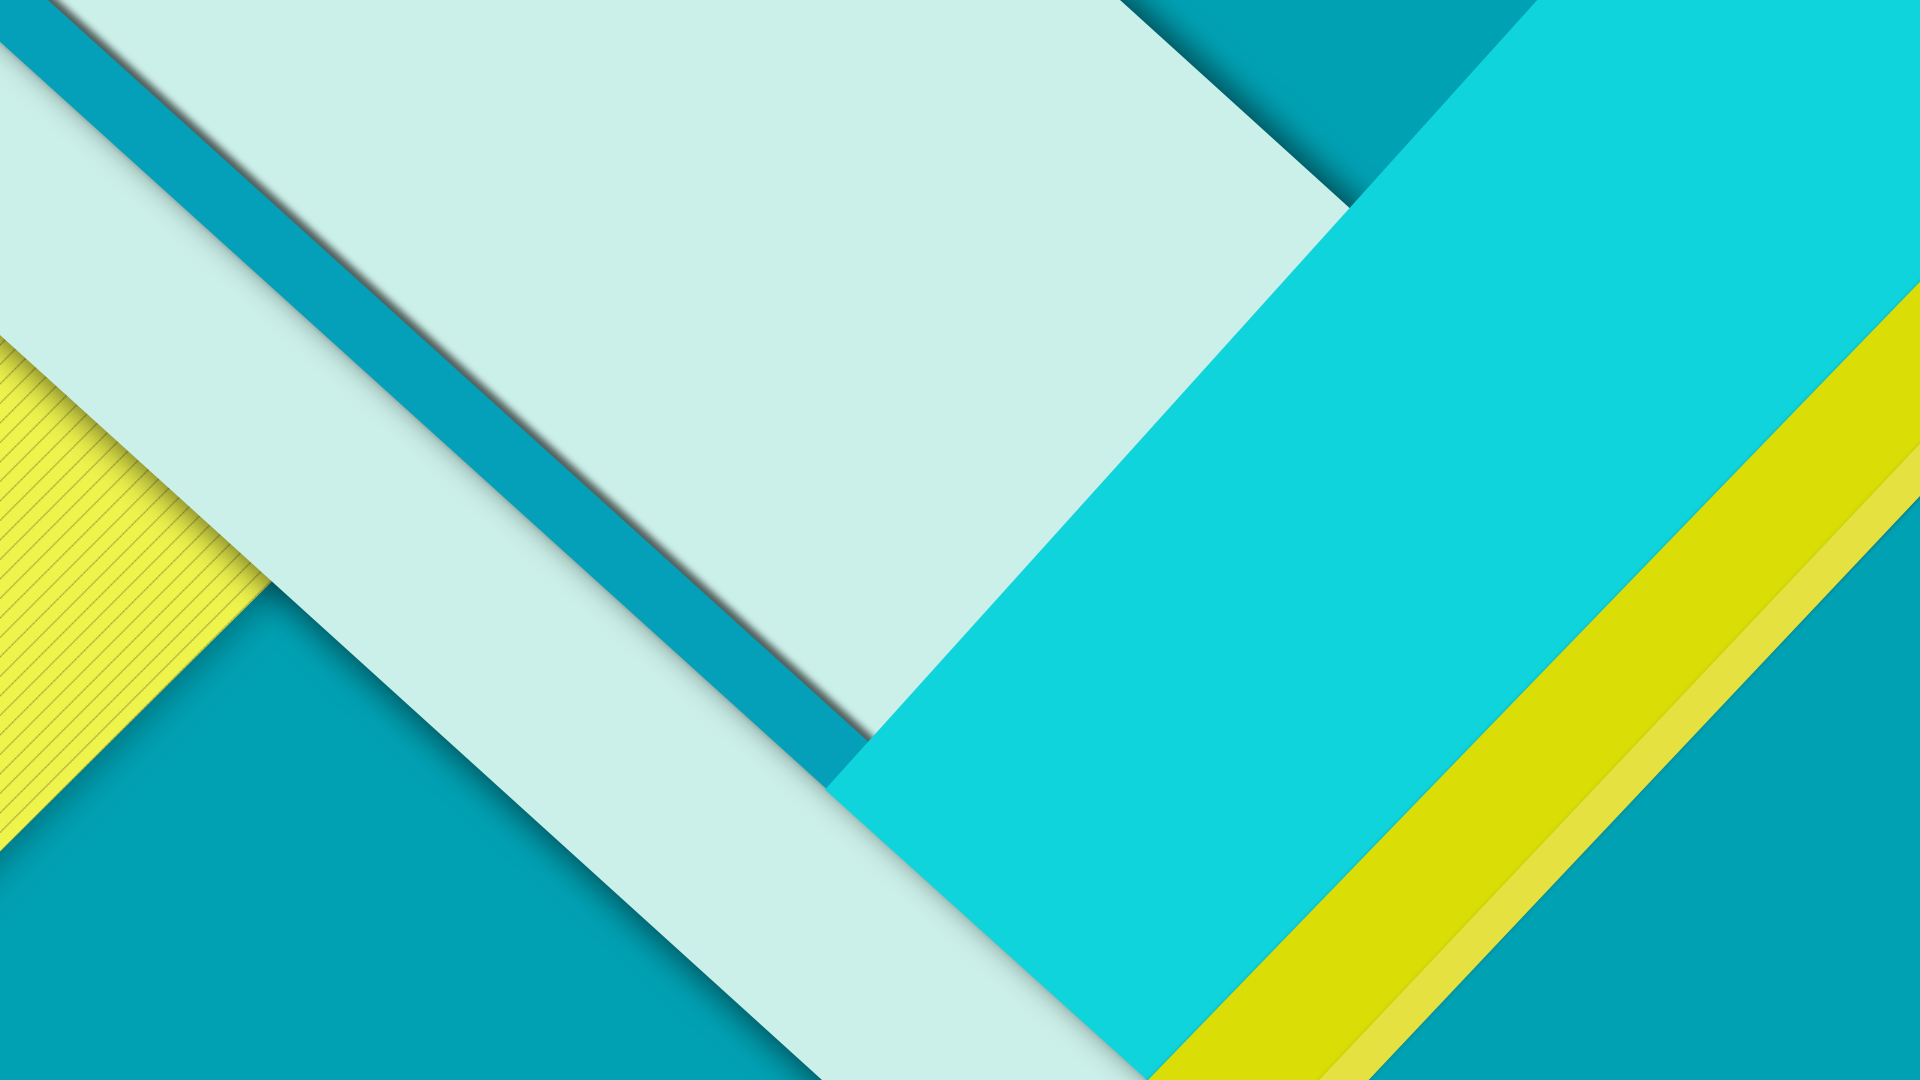 Principles Of Material Design For Android